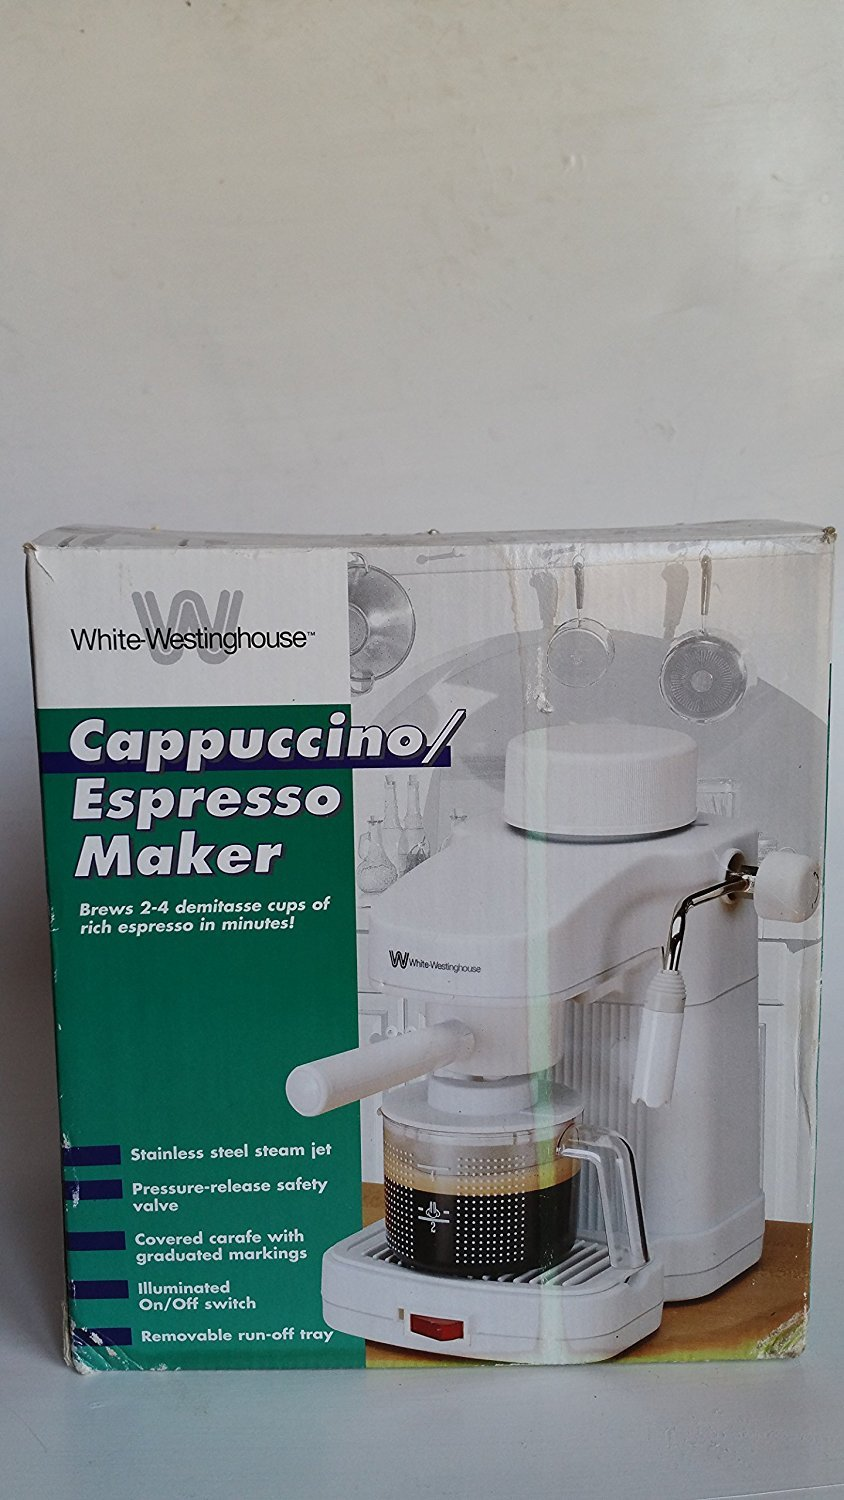 Cappuccino Espresso Maker by White Westinghouse